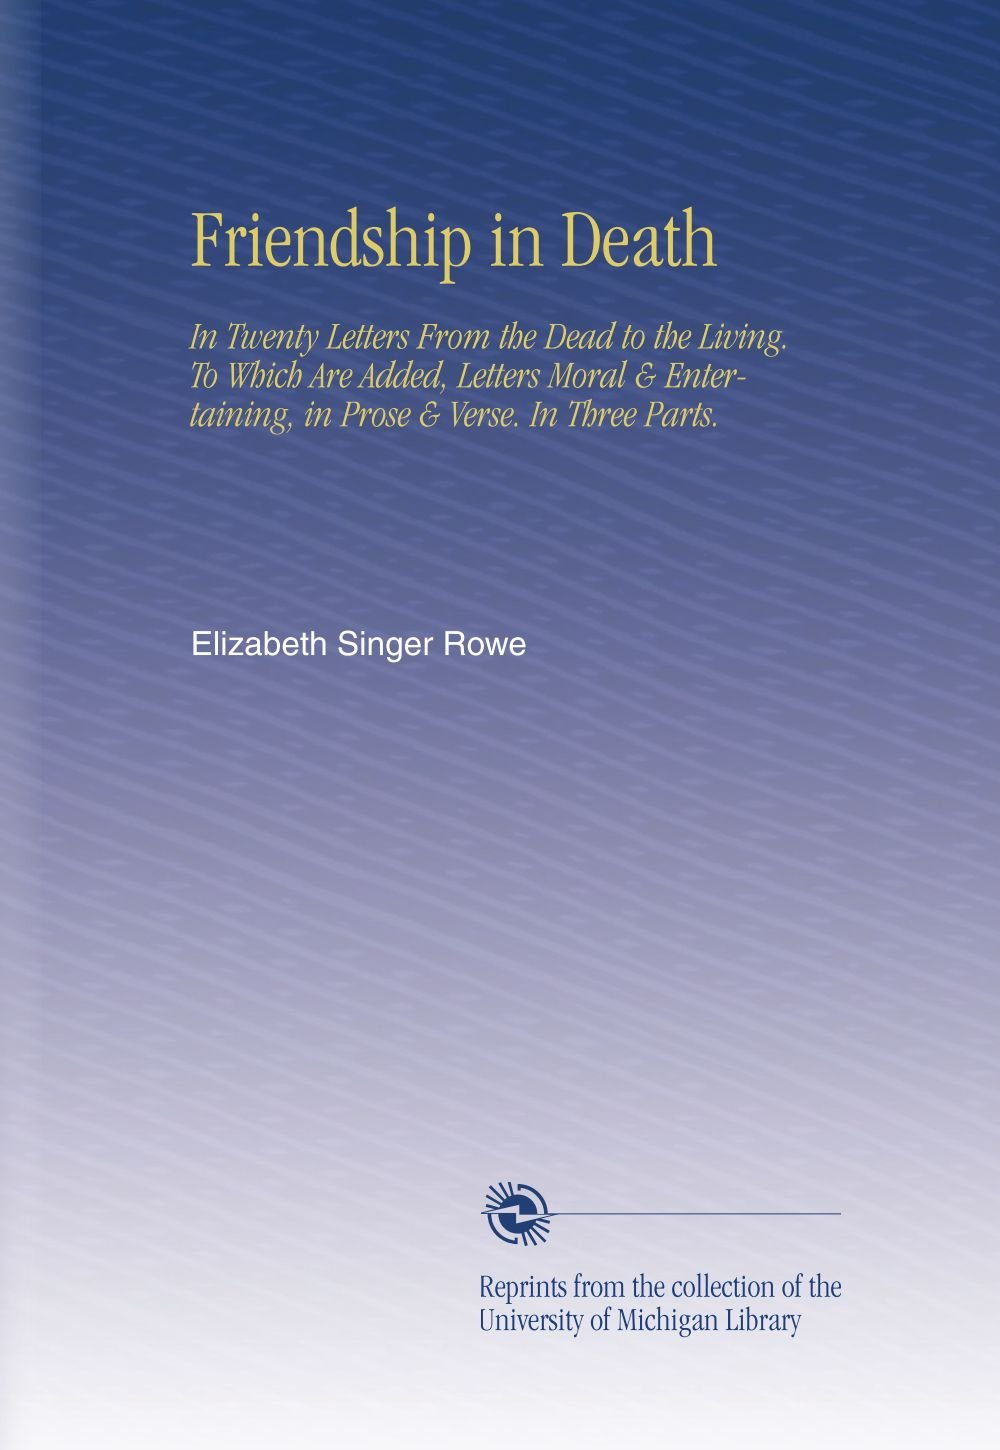 Friendship in Death: In Twenty Letters From the Dead to the Living. To Which Are Added, Letters Moral & Entertaining, in Prose & Verse. In Three Parts. pdf epub